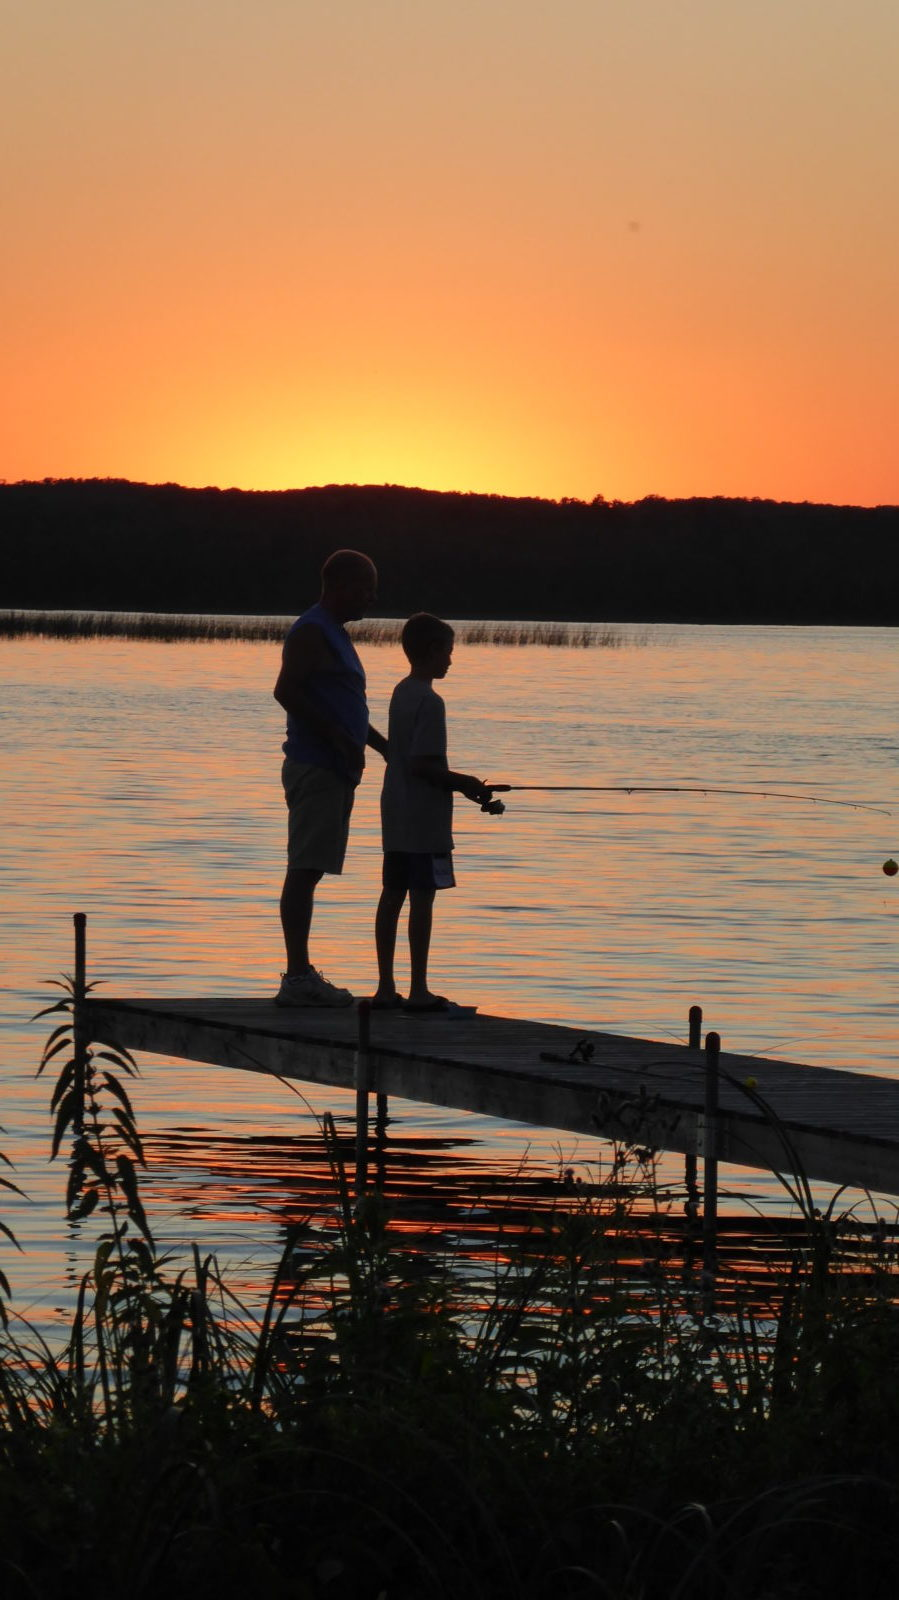 Fishing at sunset at Madden's on Gull Lake in Minnesota.